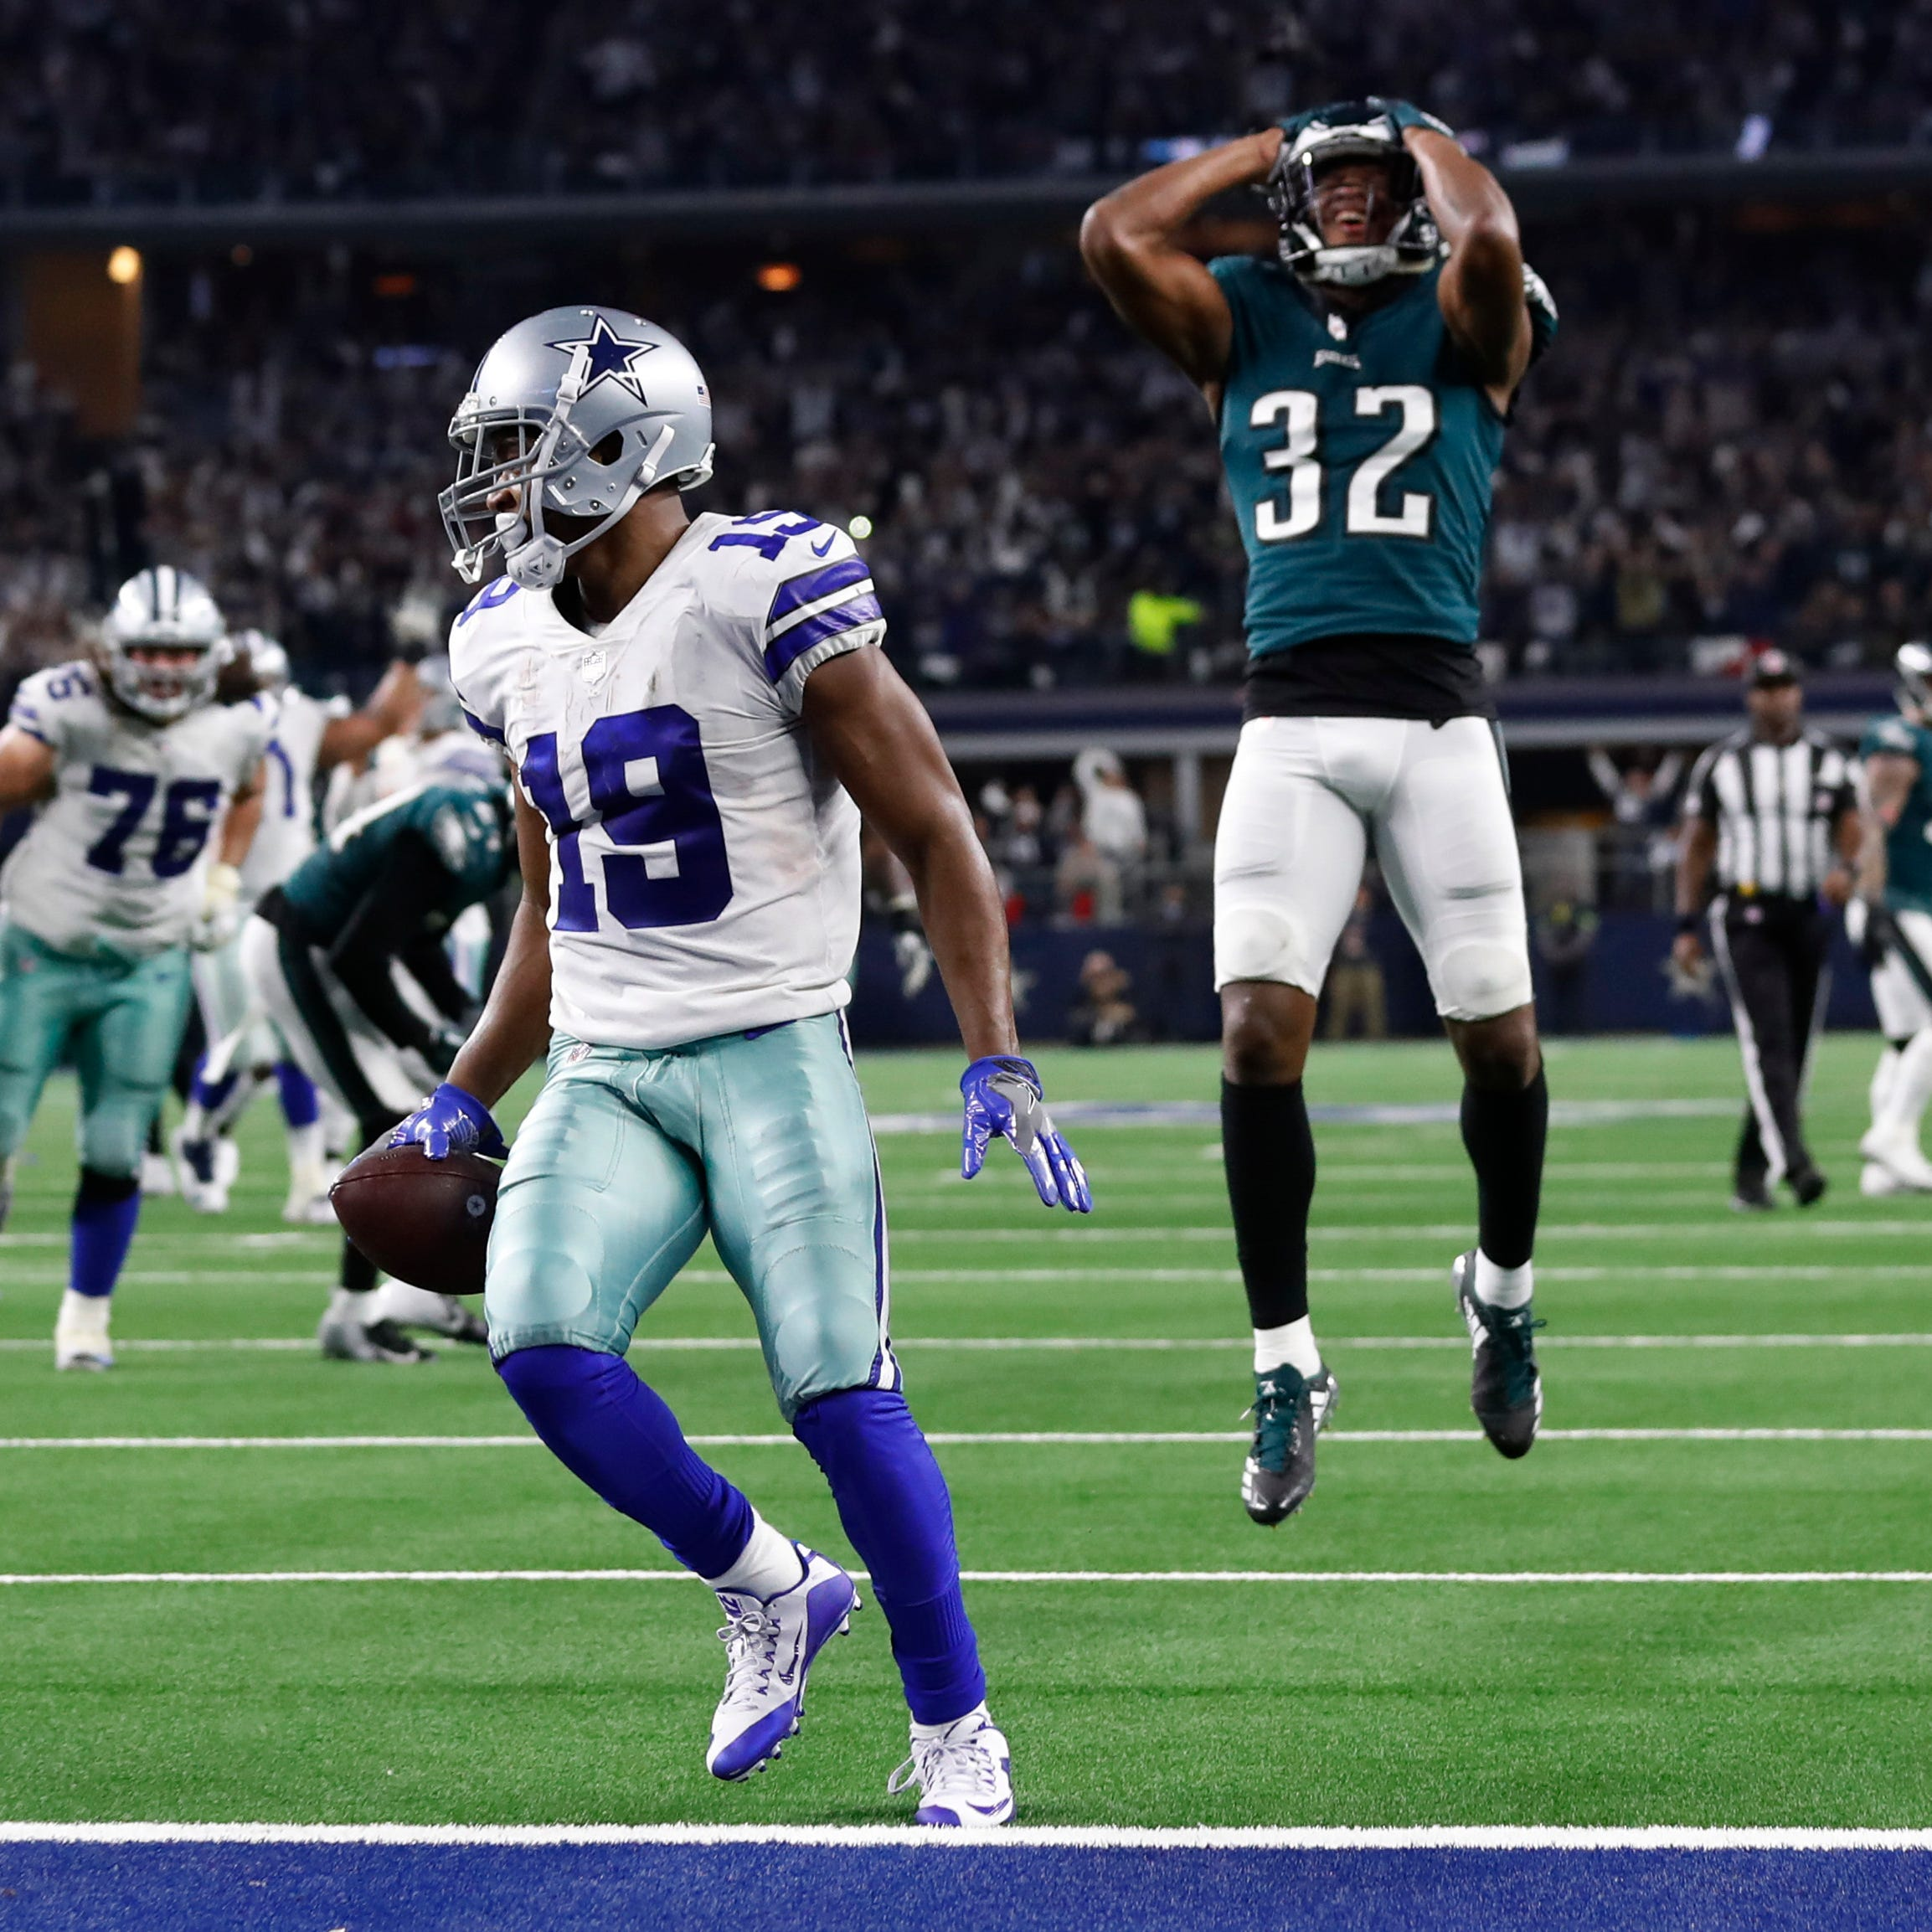 Sunday's NFL: Cowboys clip Eagles in OT, widen NFC East lead